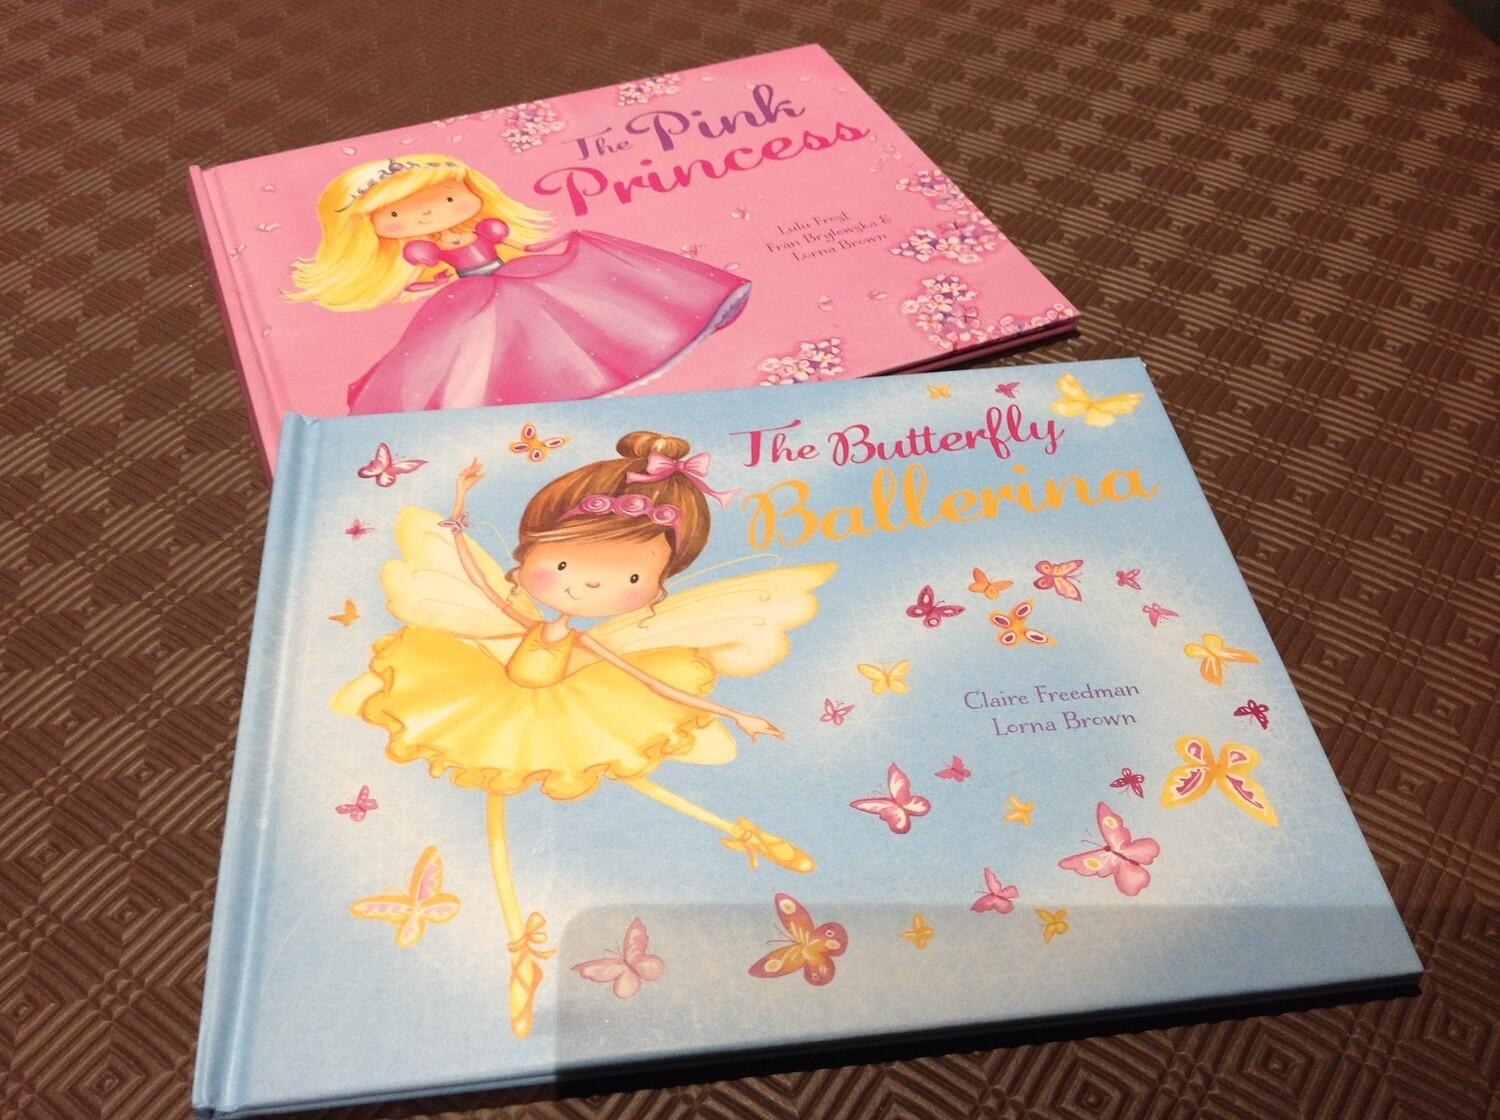 The Pink Princess and The Butterfly Ballerina Set of 2